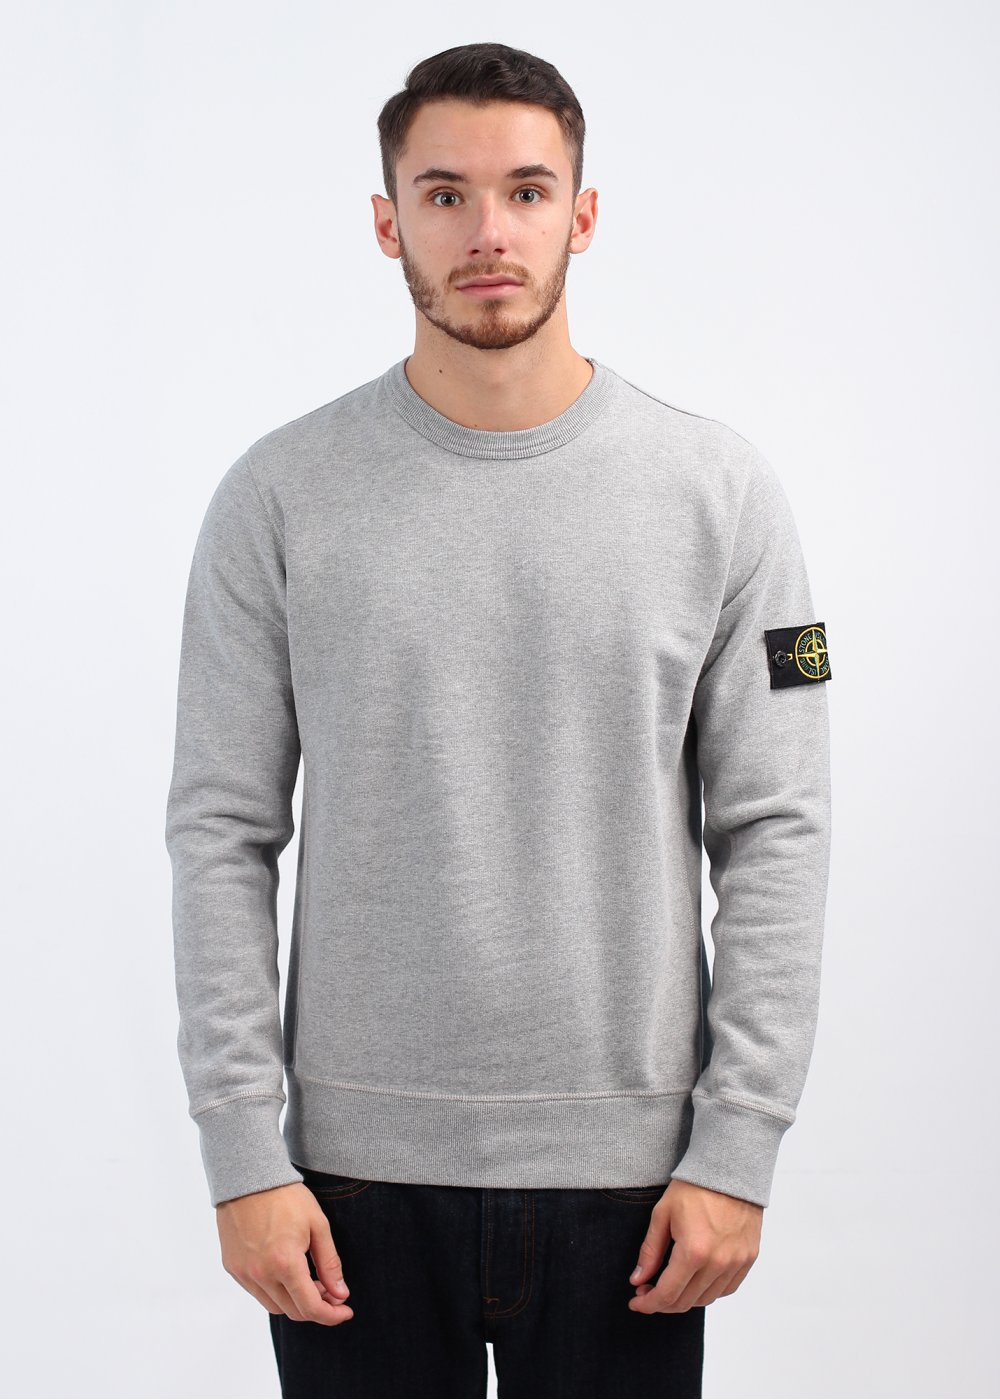 stone island sweatshirt dust. Black Bedroom Furniture Sets. Home Design Ideas